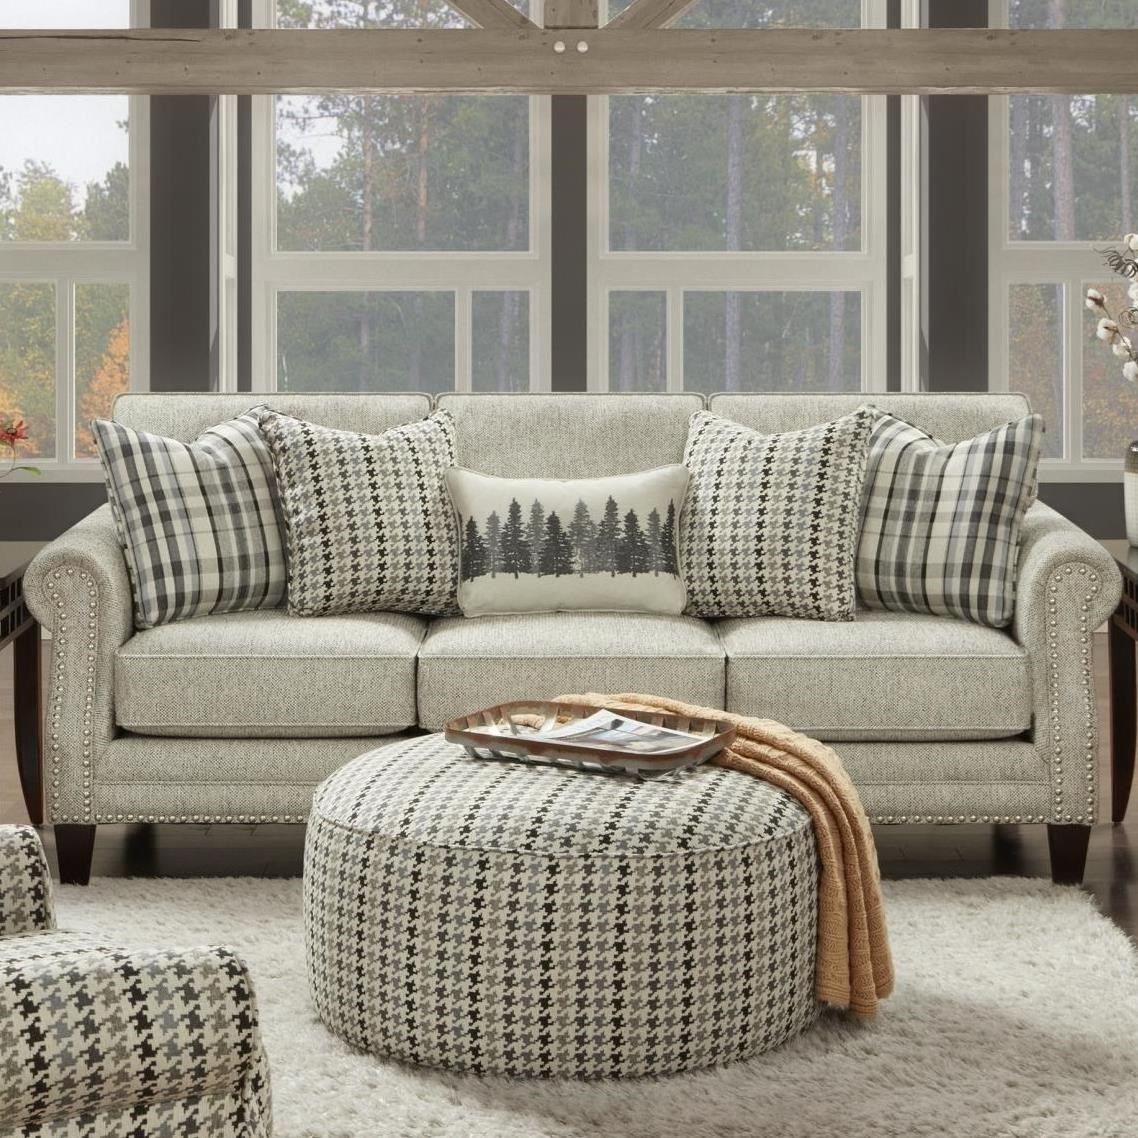 2530 Sofa by Fusion Furniture at Prime Brothers Furniture